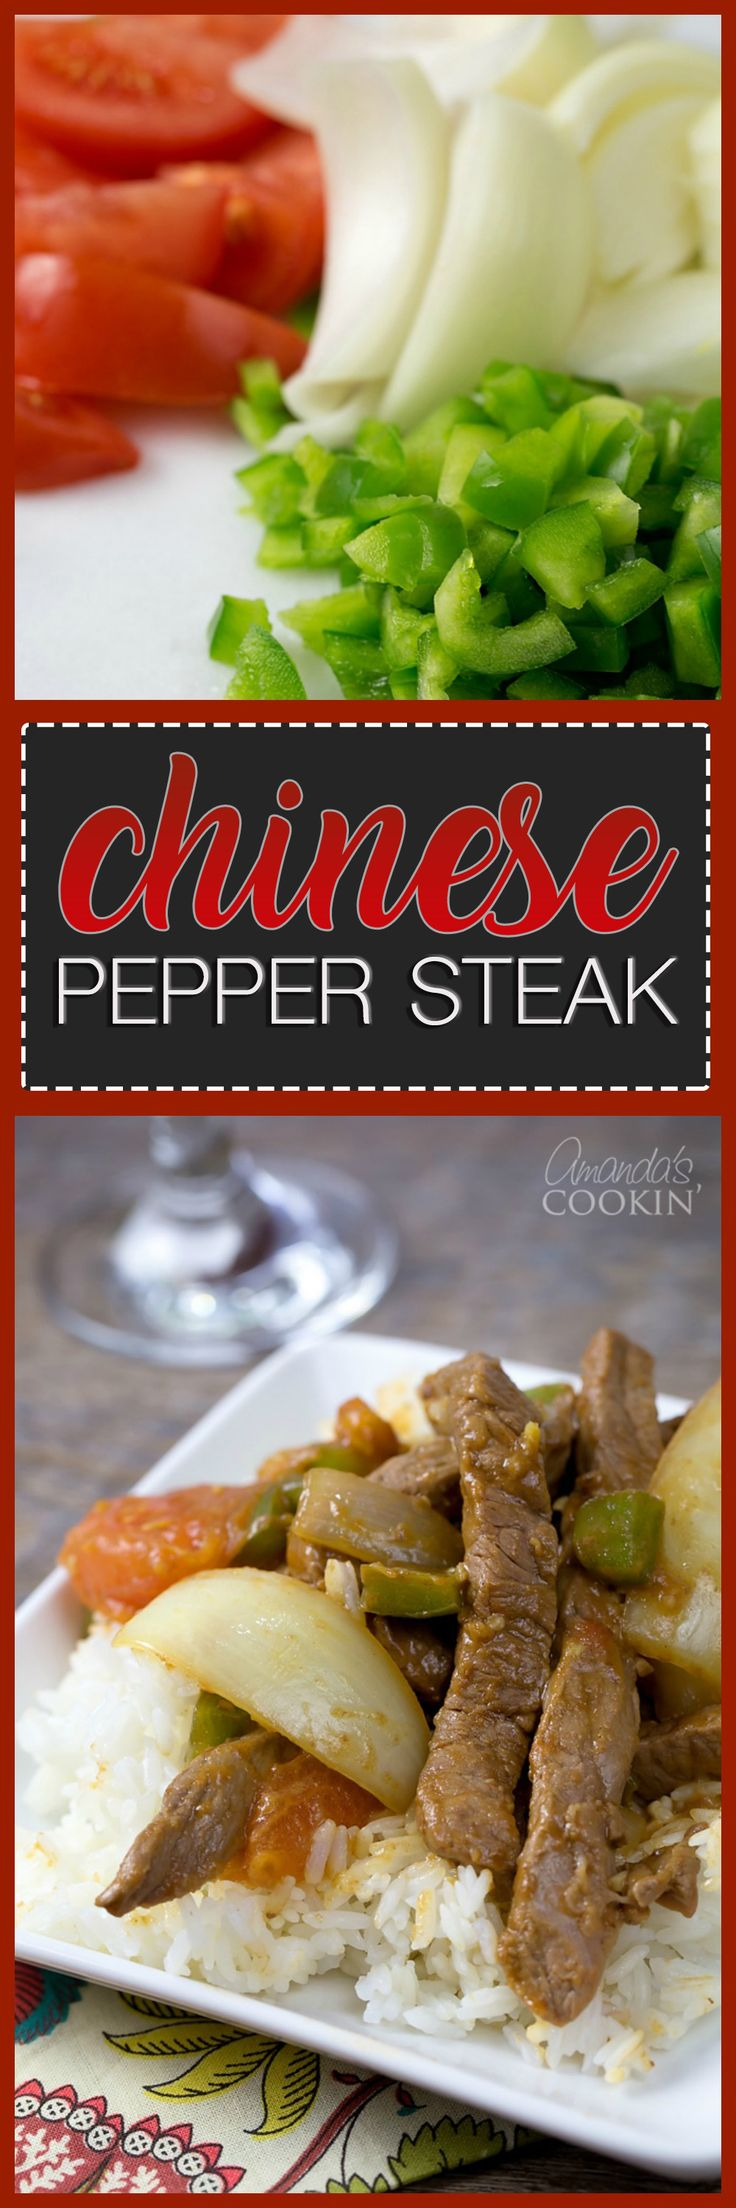 This version of Chinese Pepper Steak was inspired by a takeout restaurant I frequented in high school. If you like making stir fry, you must try this recipe